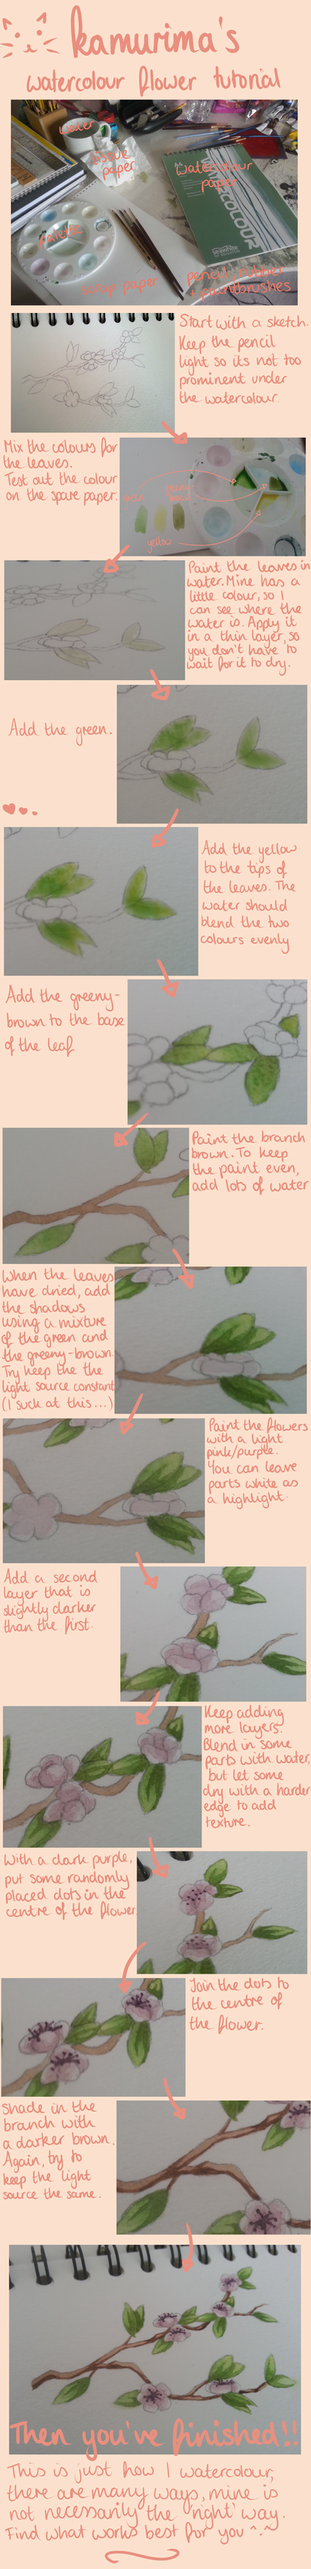 Watercolour Flower Tutorial by kamurima